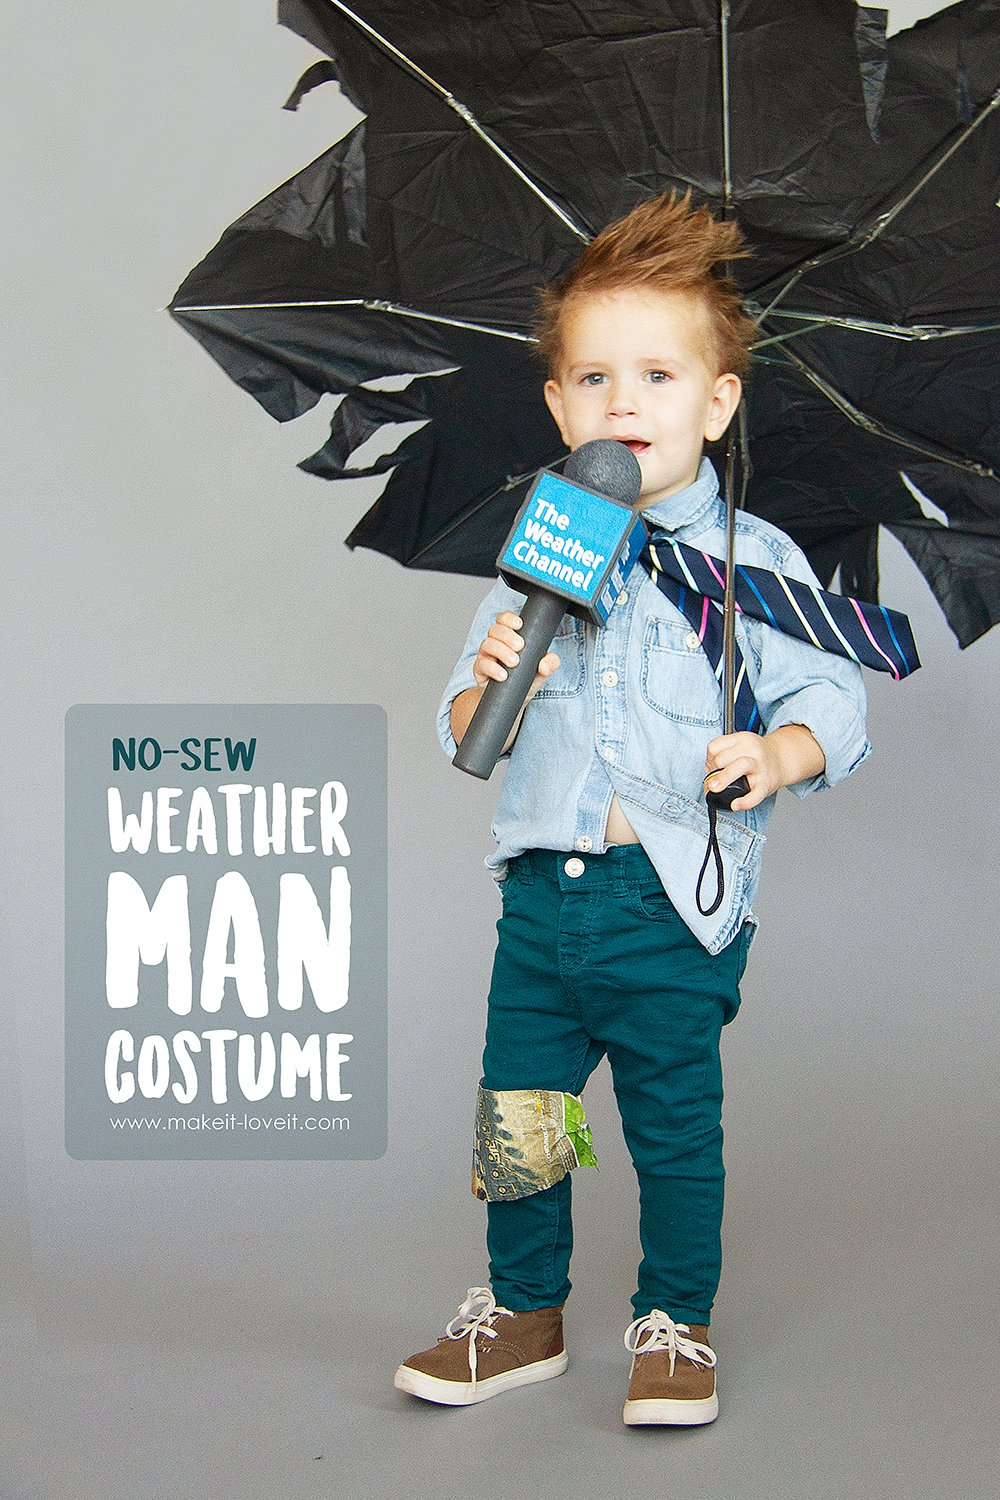 Make a no-sew weatherman costume